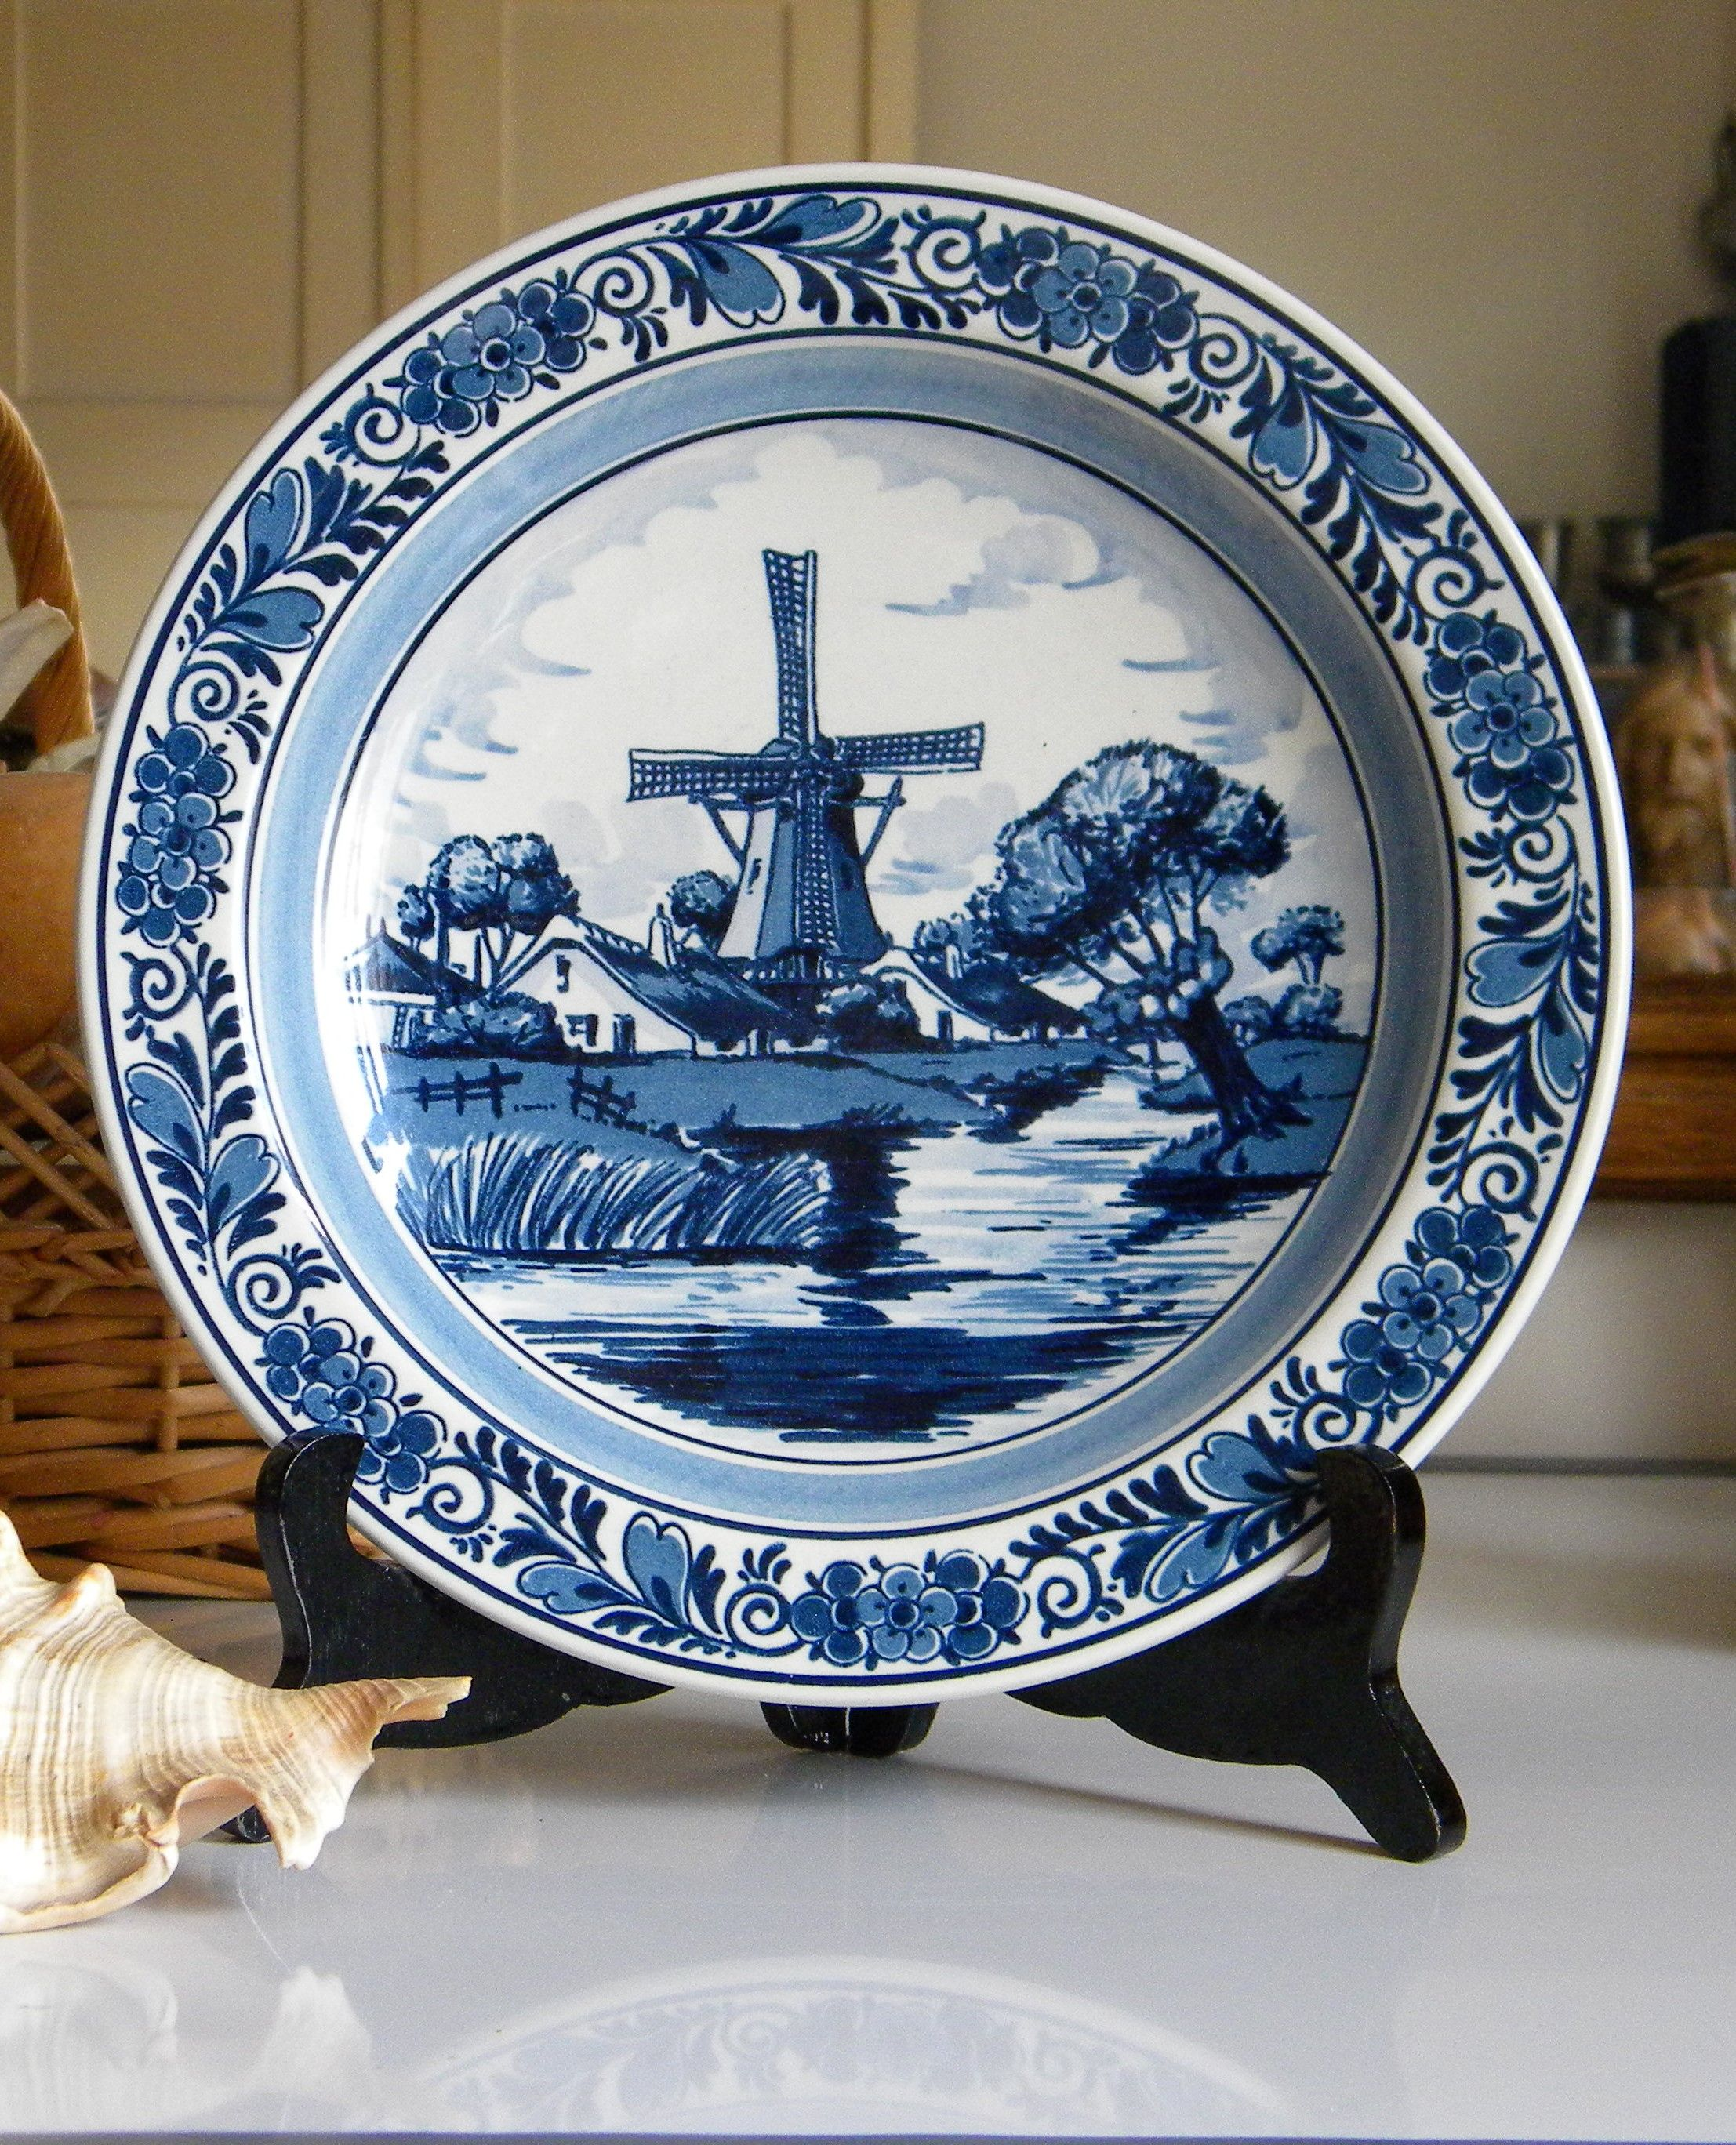 Blue And White Decorative Wall Plates Stunning The Dutch Plate Is Entirely Hand Painted With Original Cobalt Blue Review